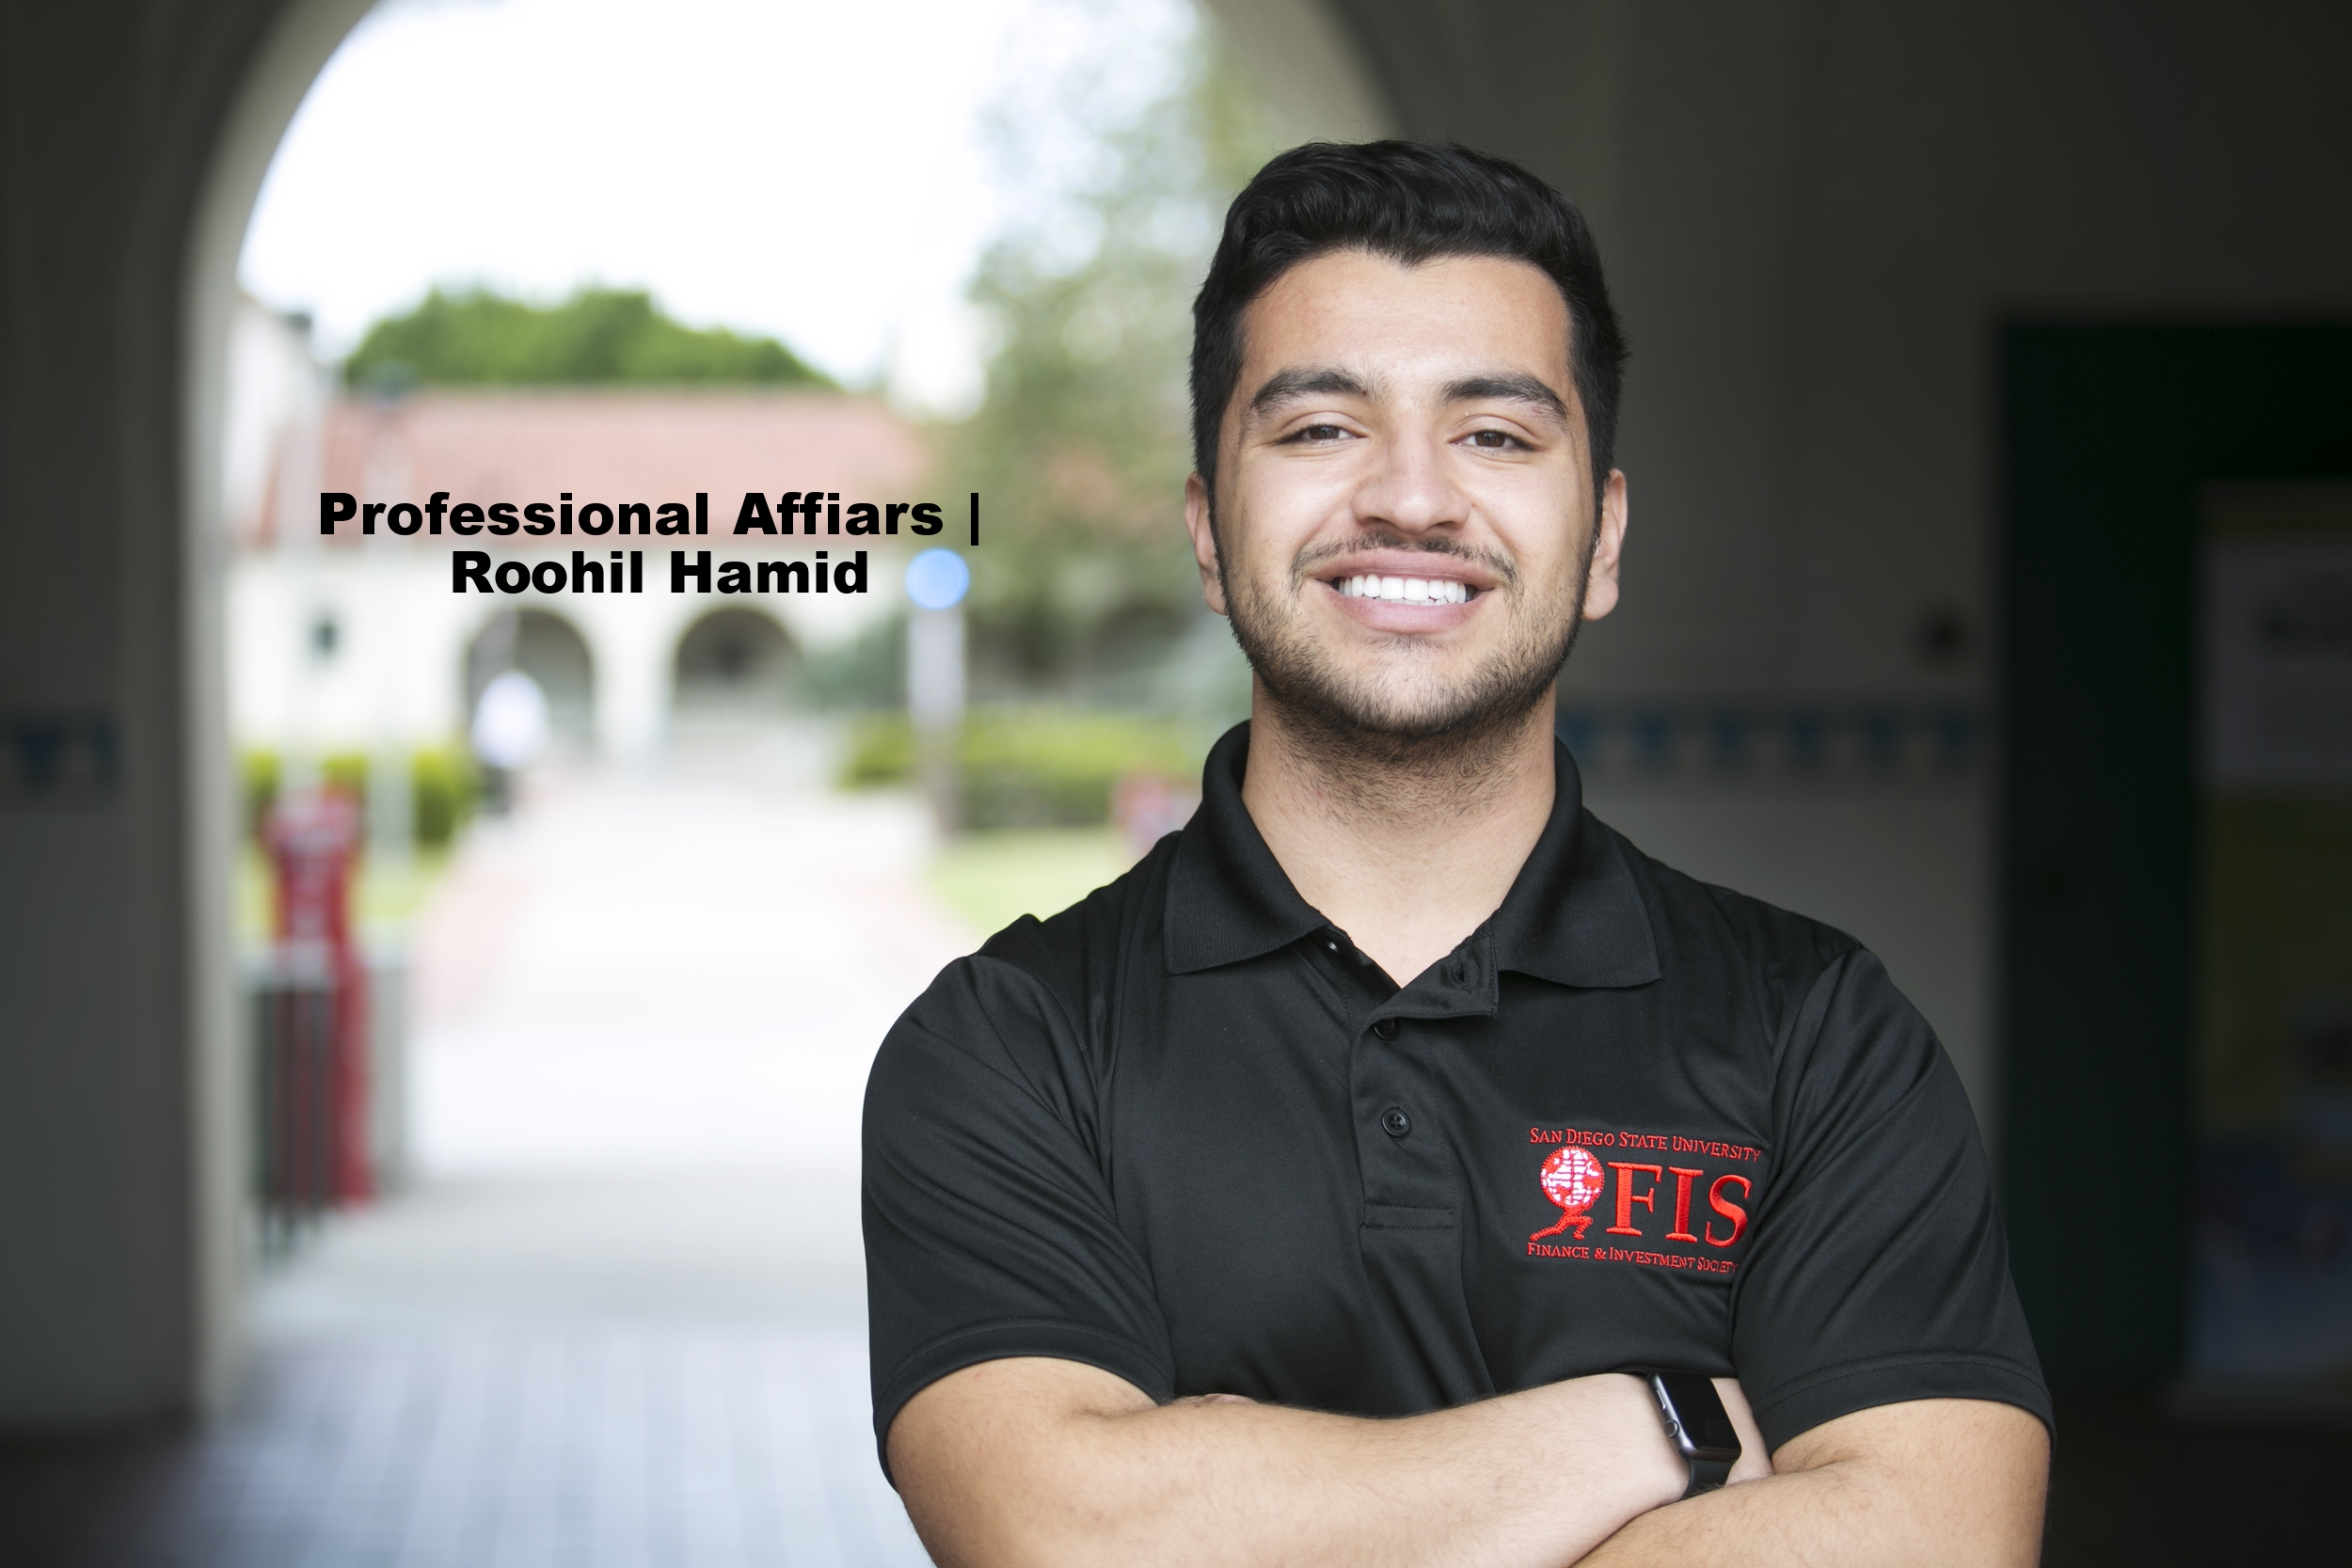 VP of Professional Affairs - Roohil Hamid